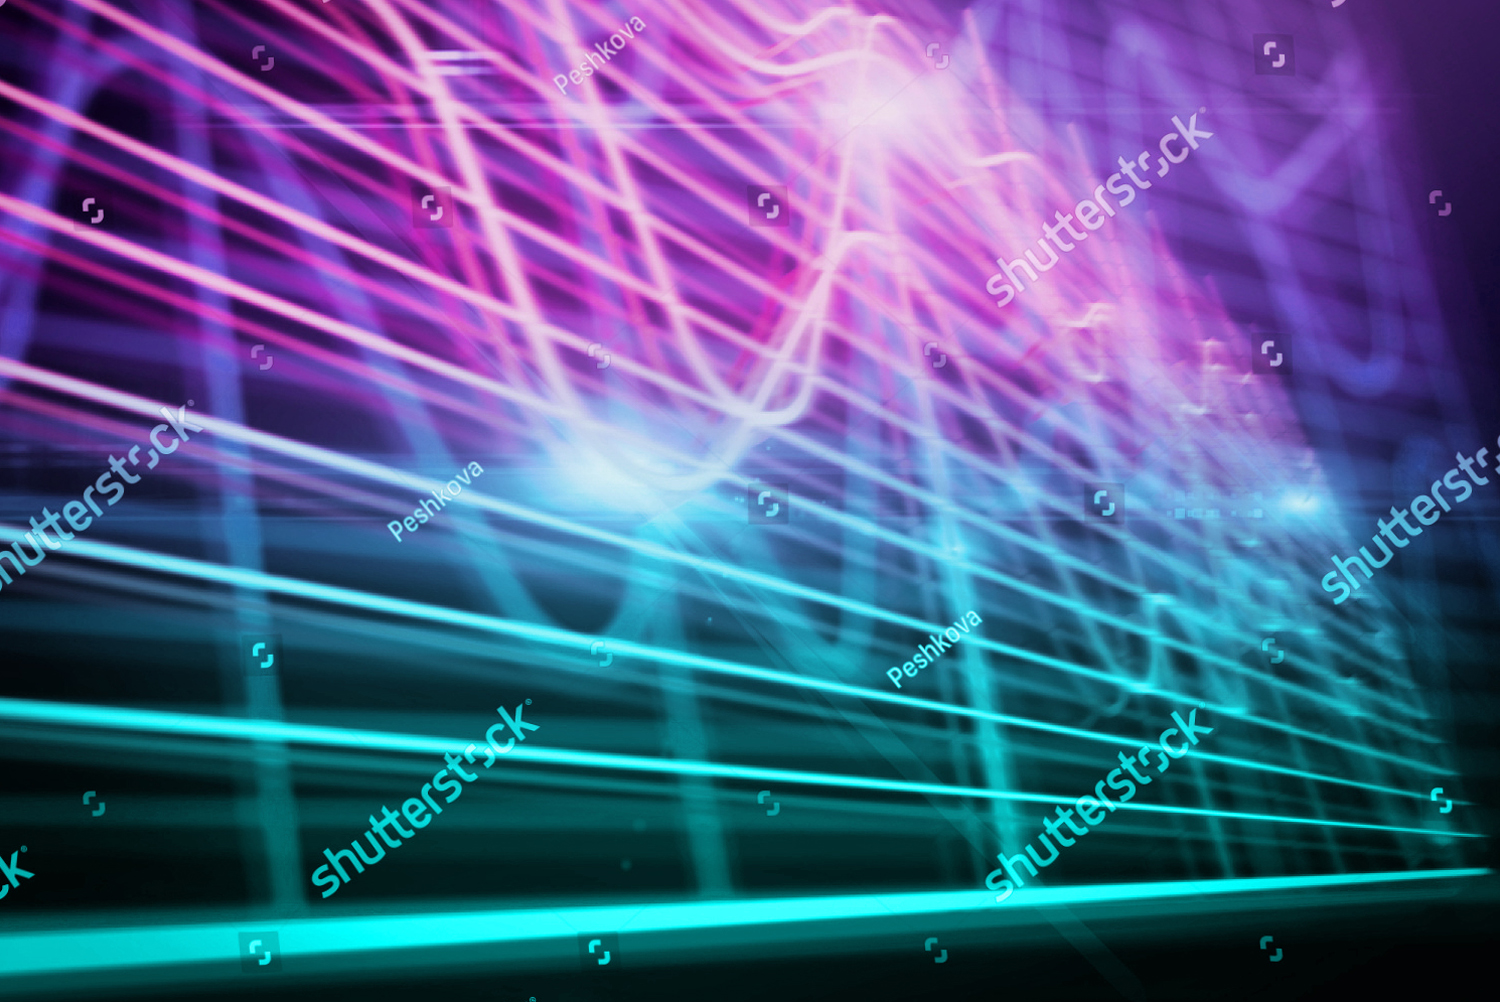 stock-photo-abstract-digital-business-chart-background-financial-growth-concept-d-rendering-741596428.jpg